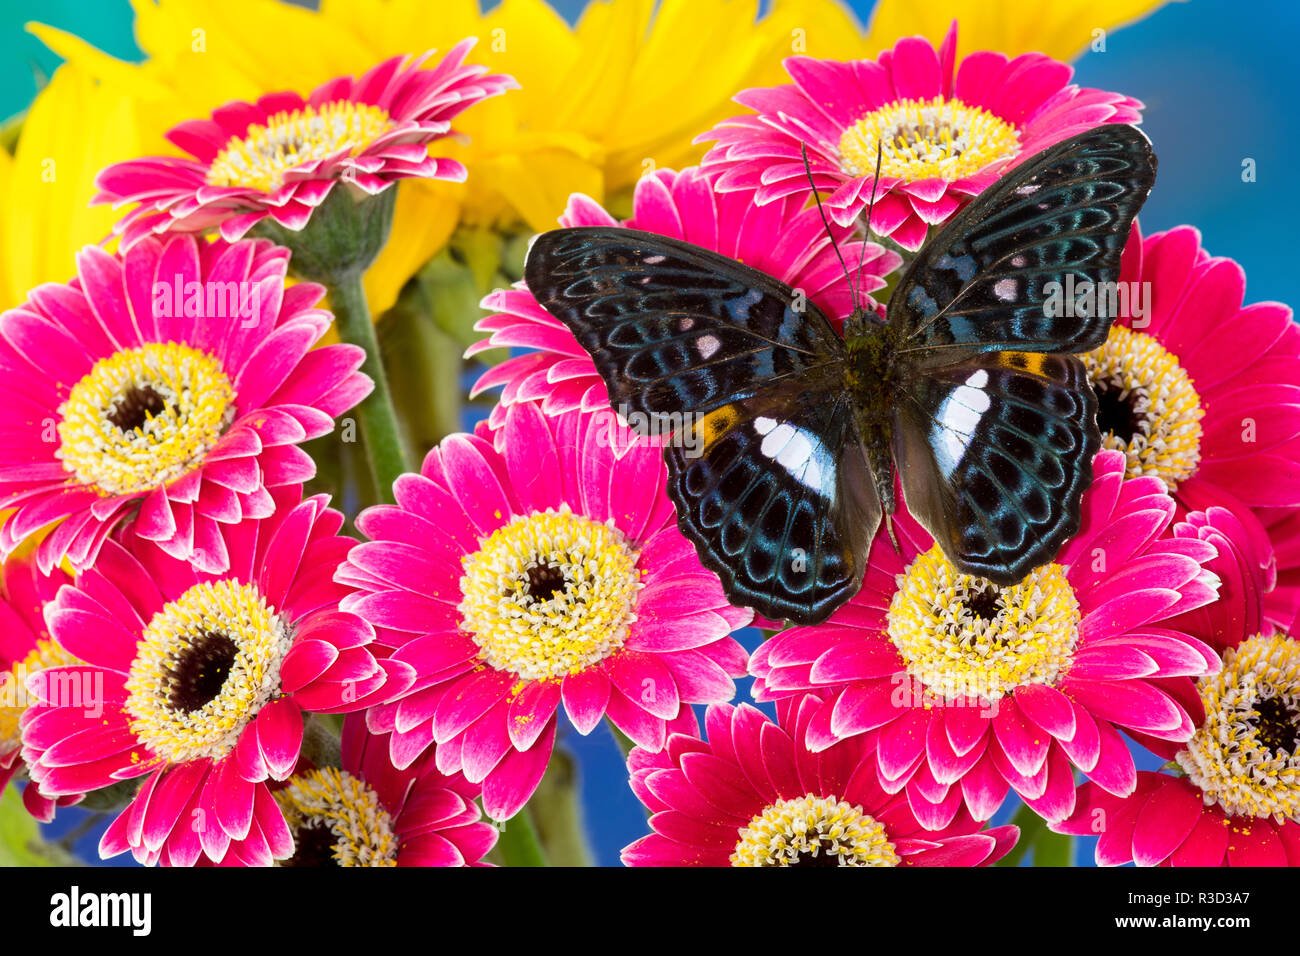 Moduza lymire lymire a south-east Asian butterfly on bright colored Gerber Daisies - Stock Image